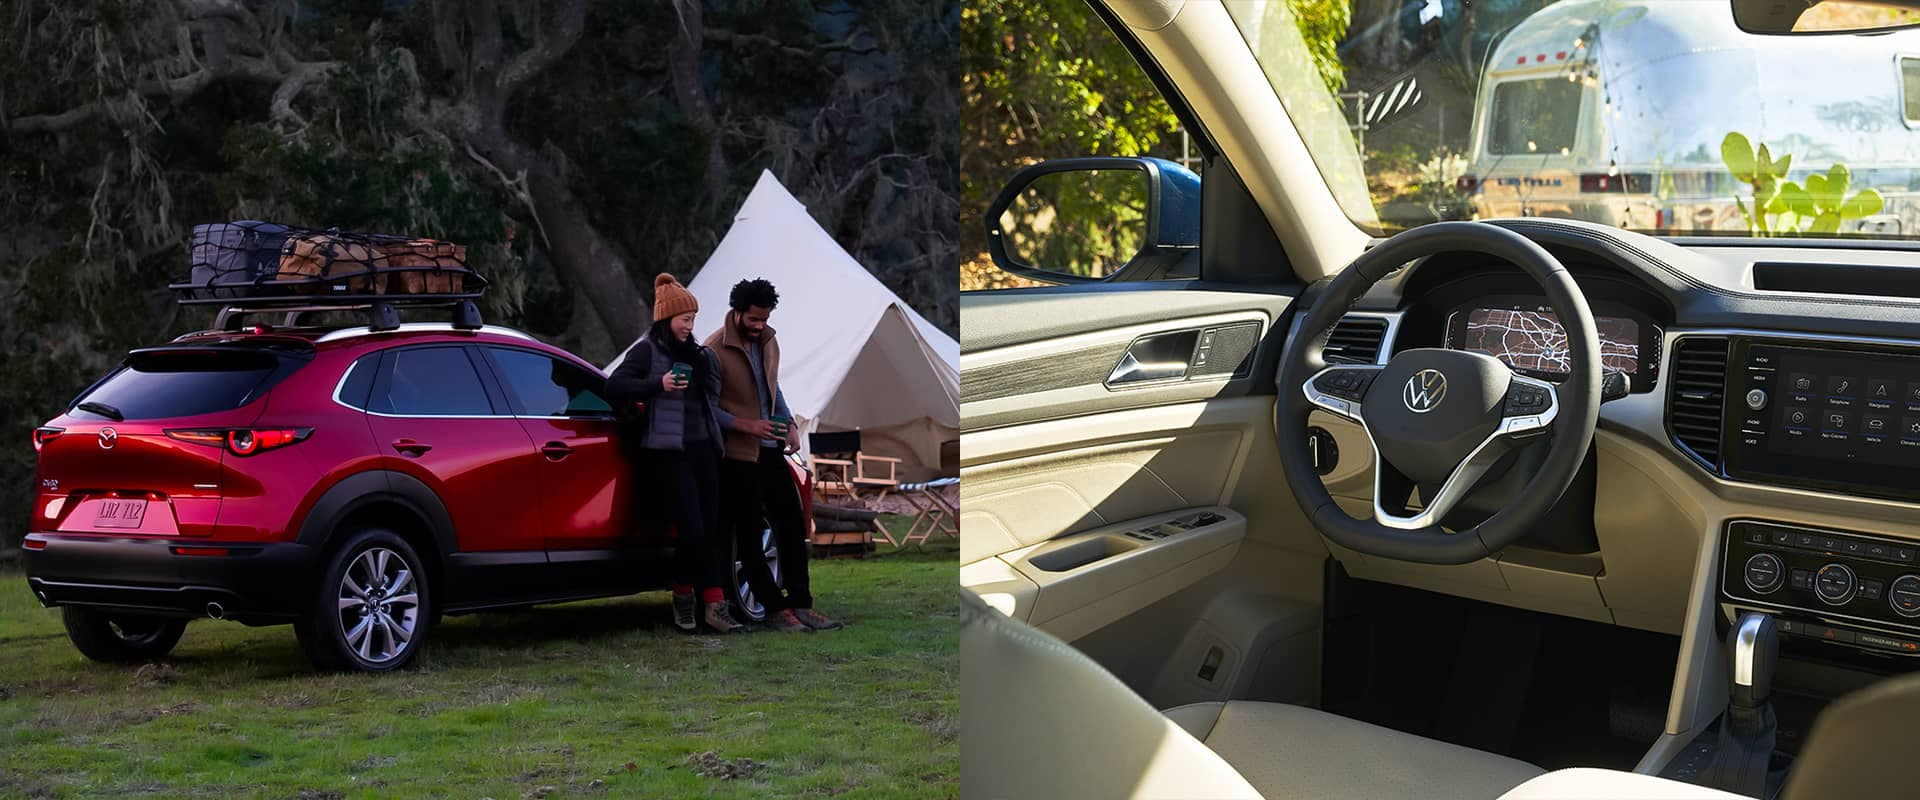 Couple leaning against an SUV at a campsite and the interior of a vehicle